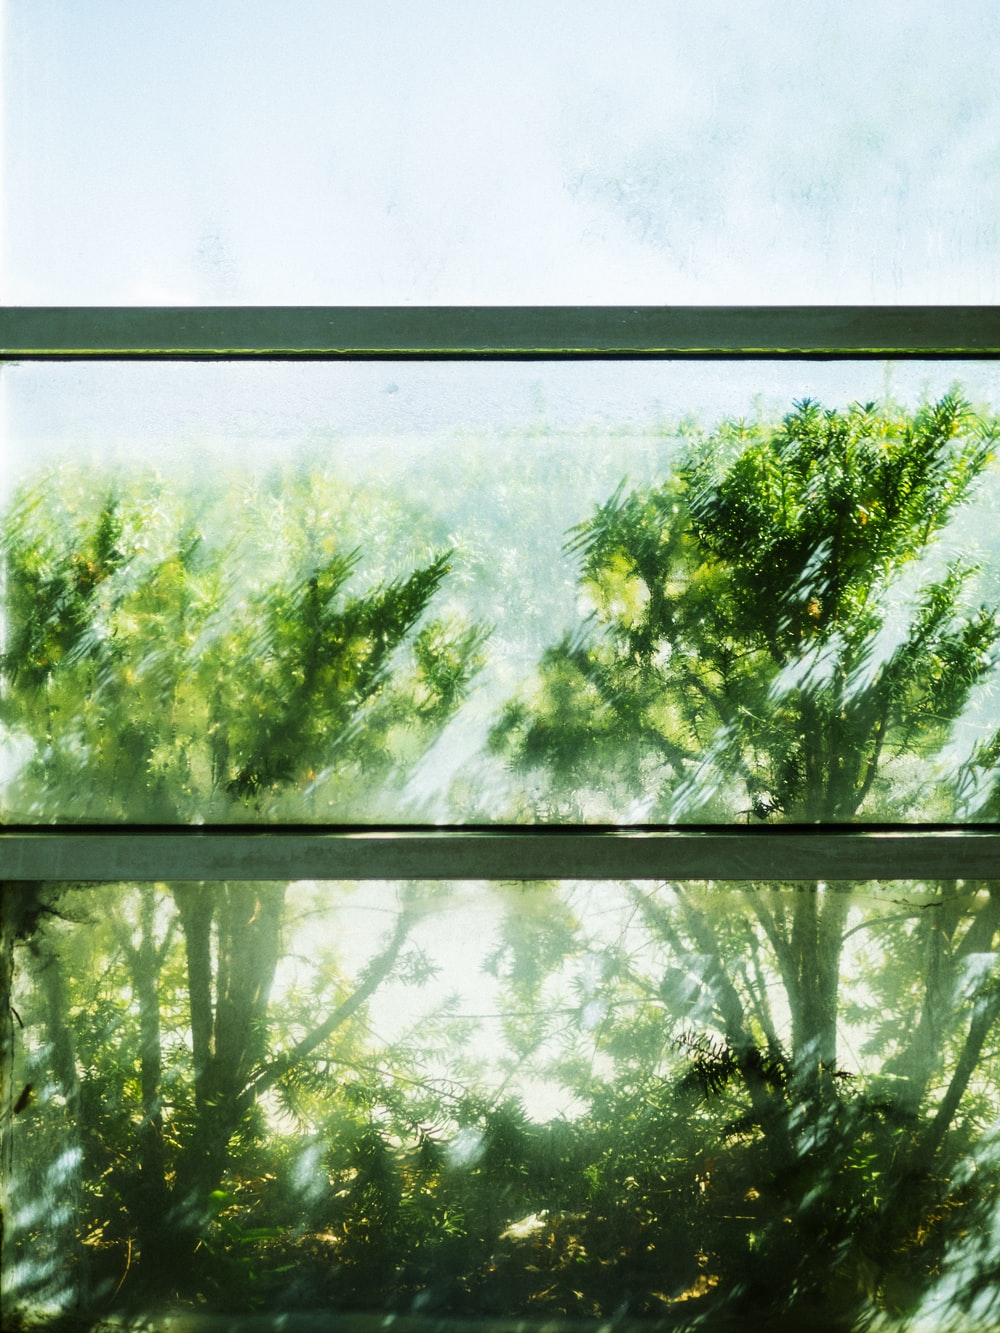 green trees in front of window